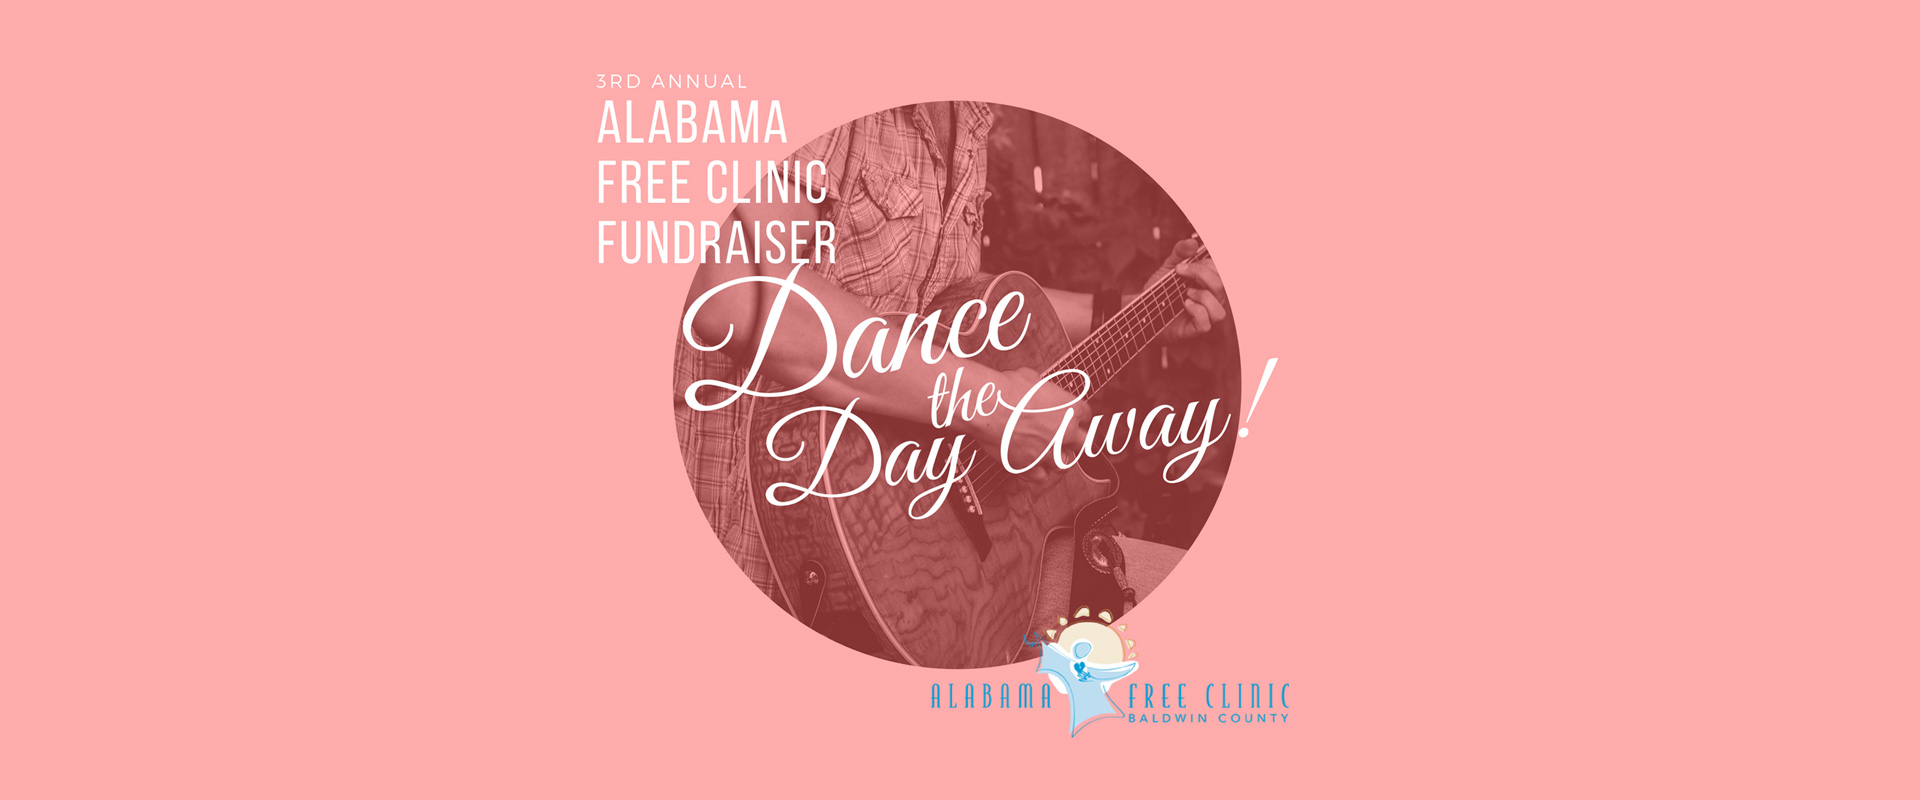 alabama free clinic dance day fundraiser fairhope alabama